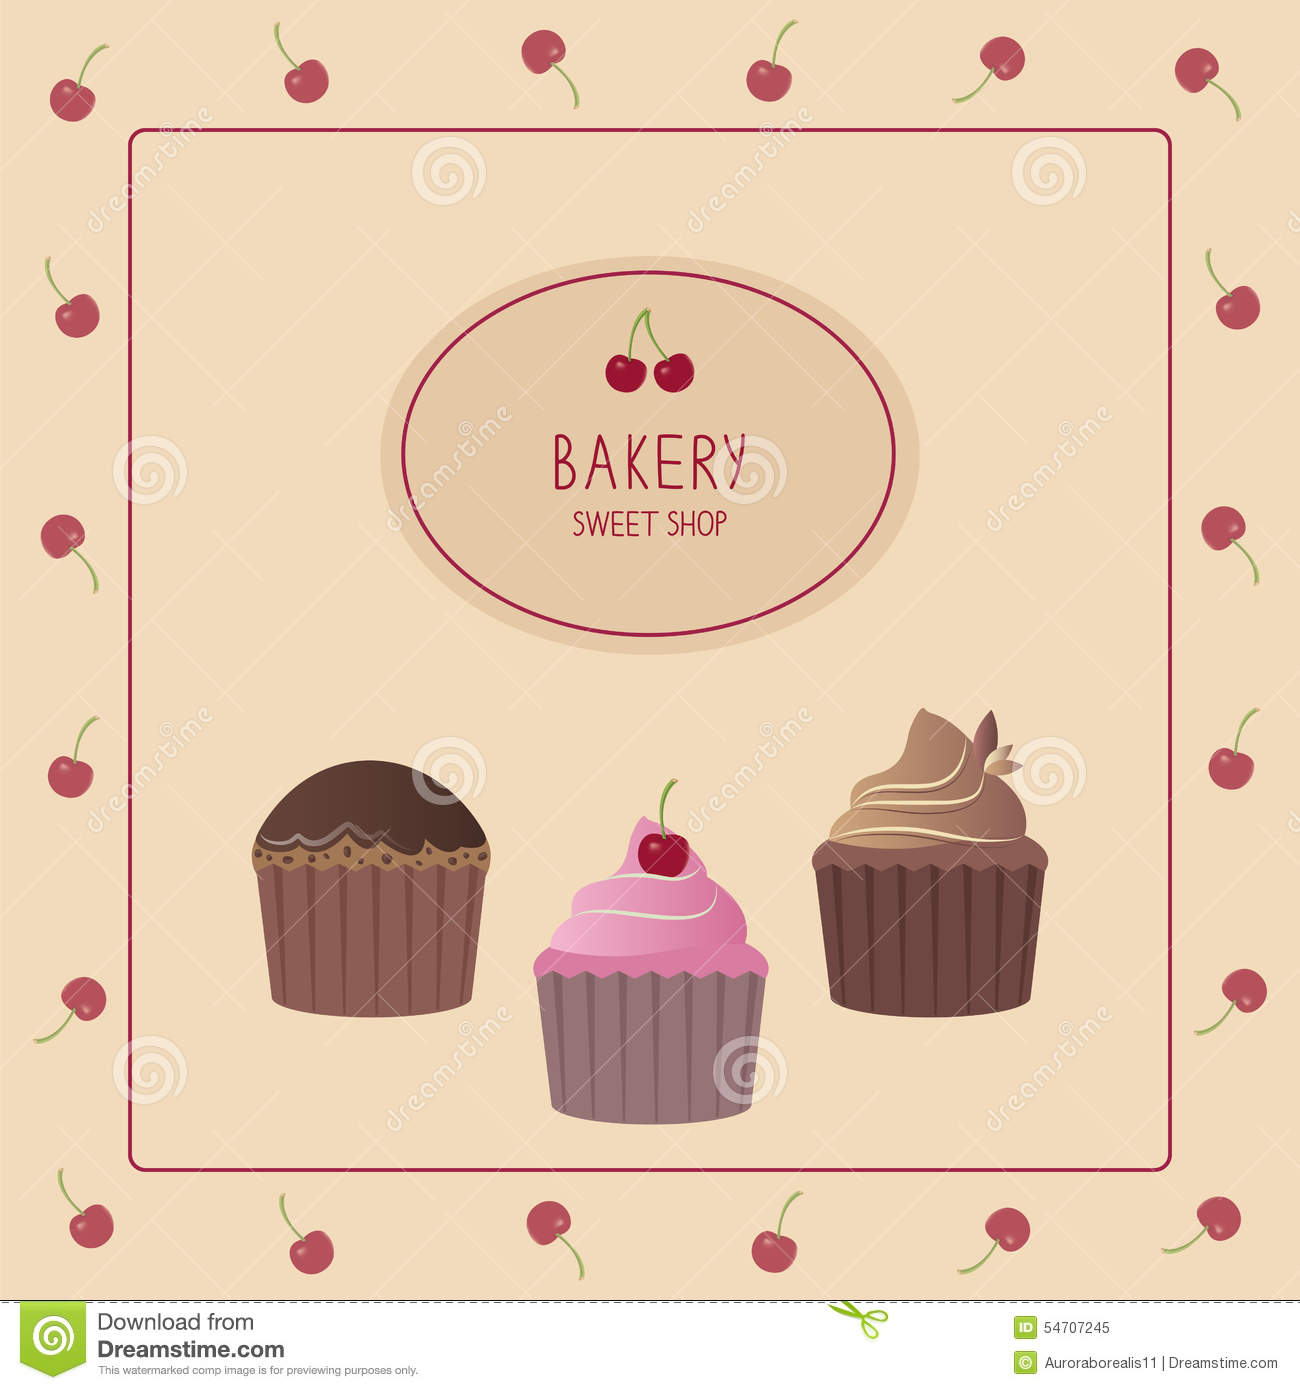 Bakery Design Template Cute Card With Cupcakes Stock Vector